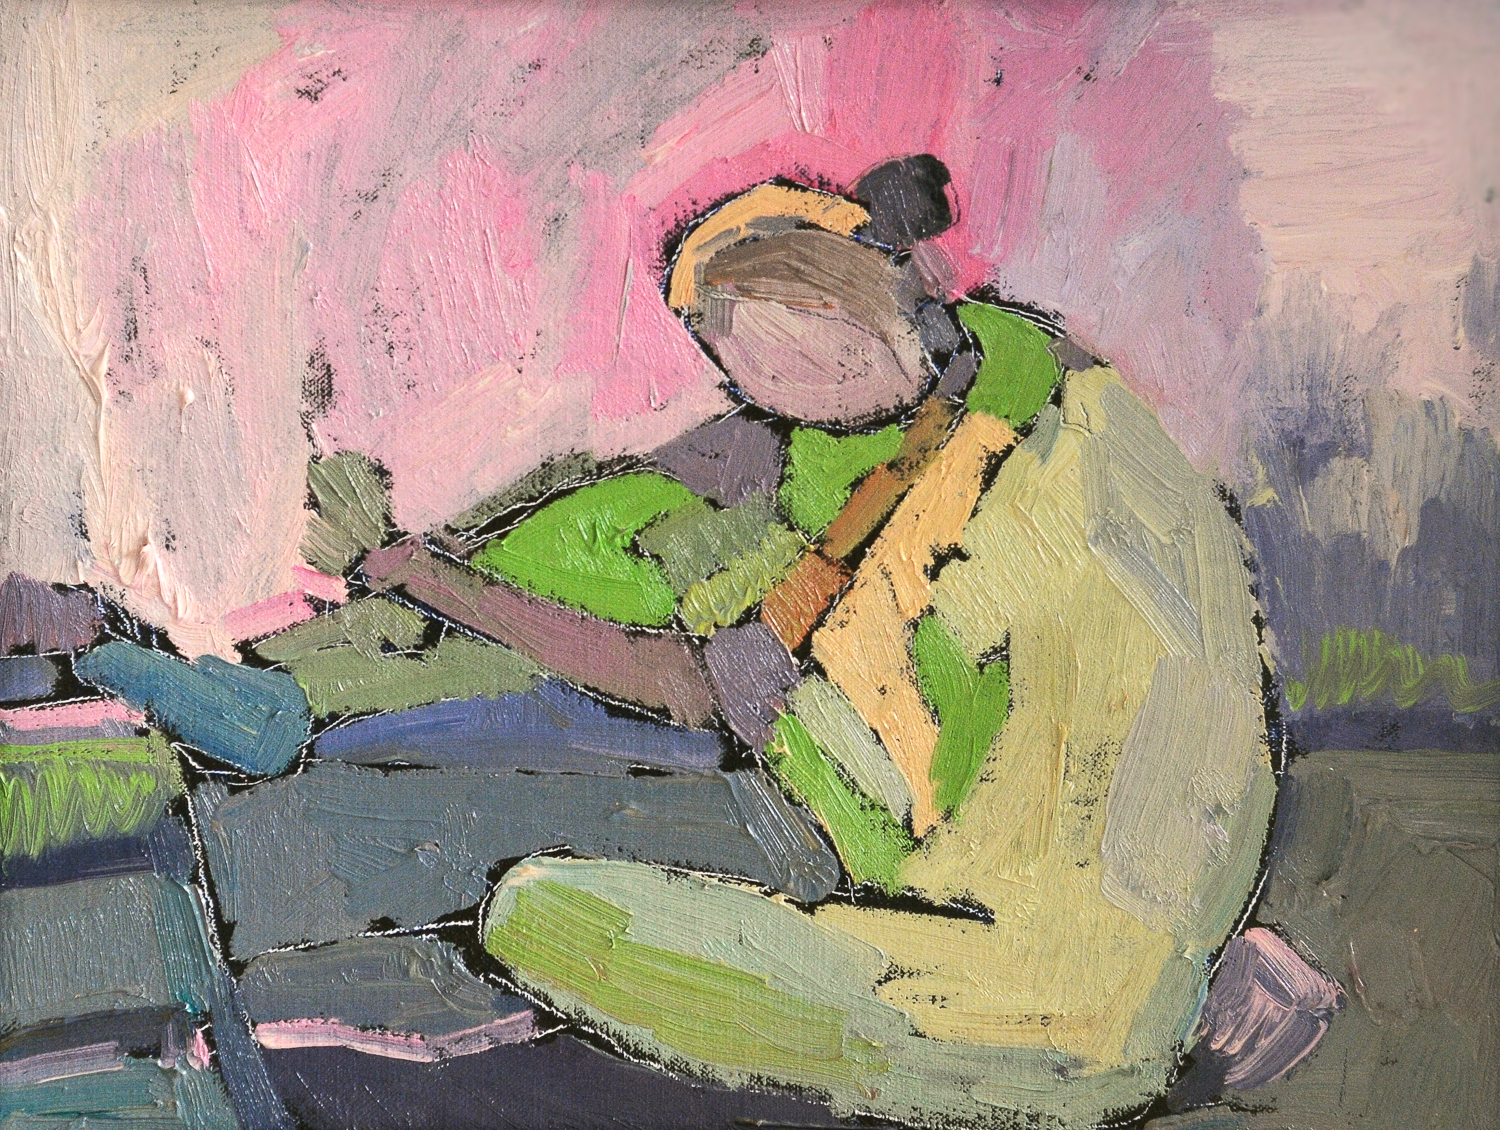 Figure in Pink | Oil on Linen Canvas | 11 x 14""